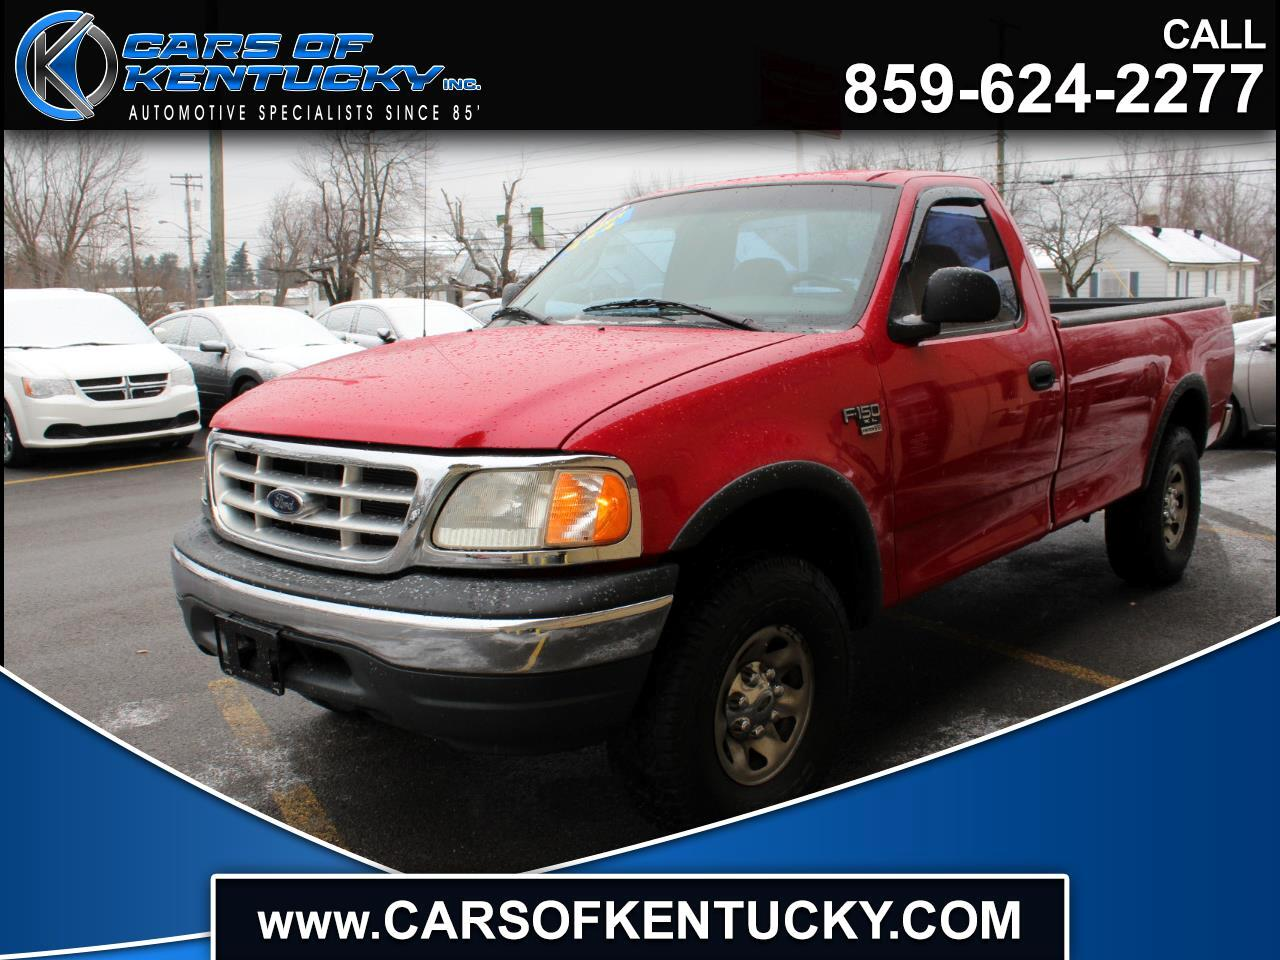 2001 Ford F-150 XL Long Bed 4WD